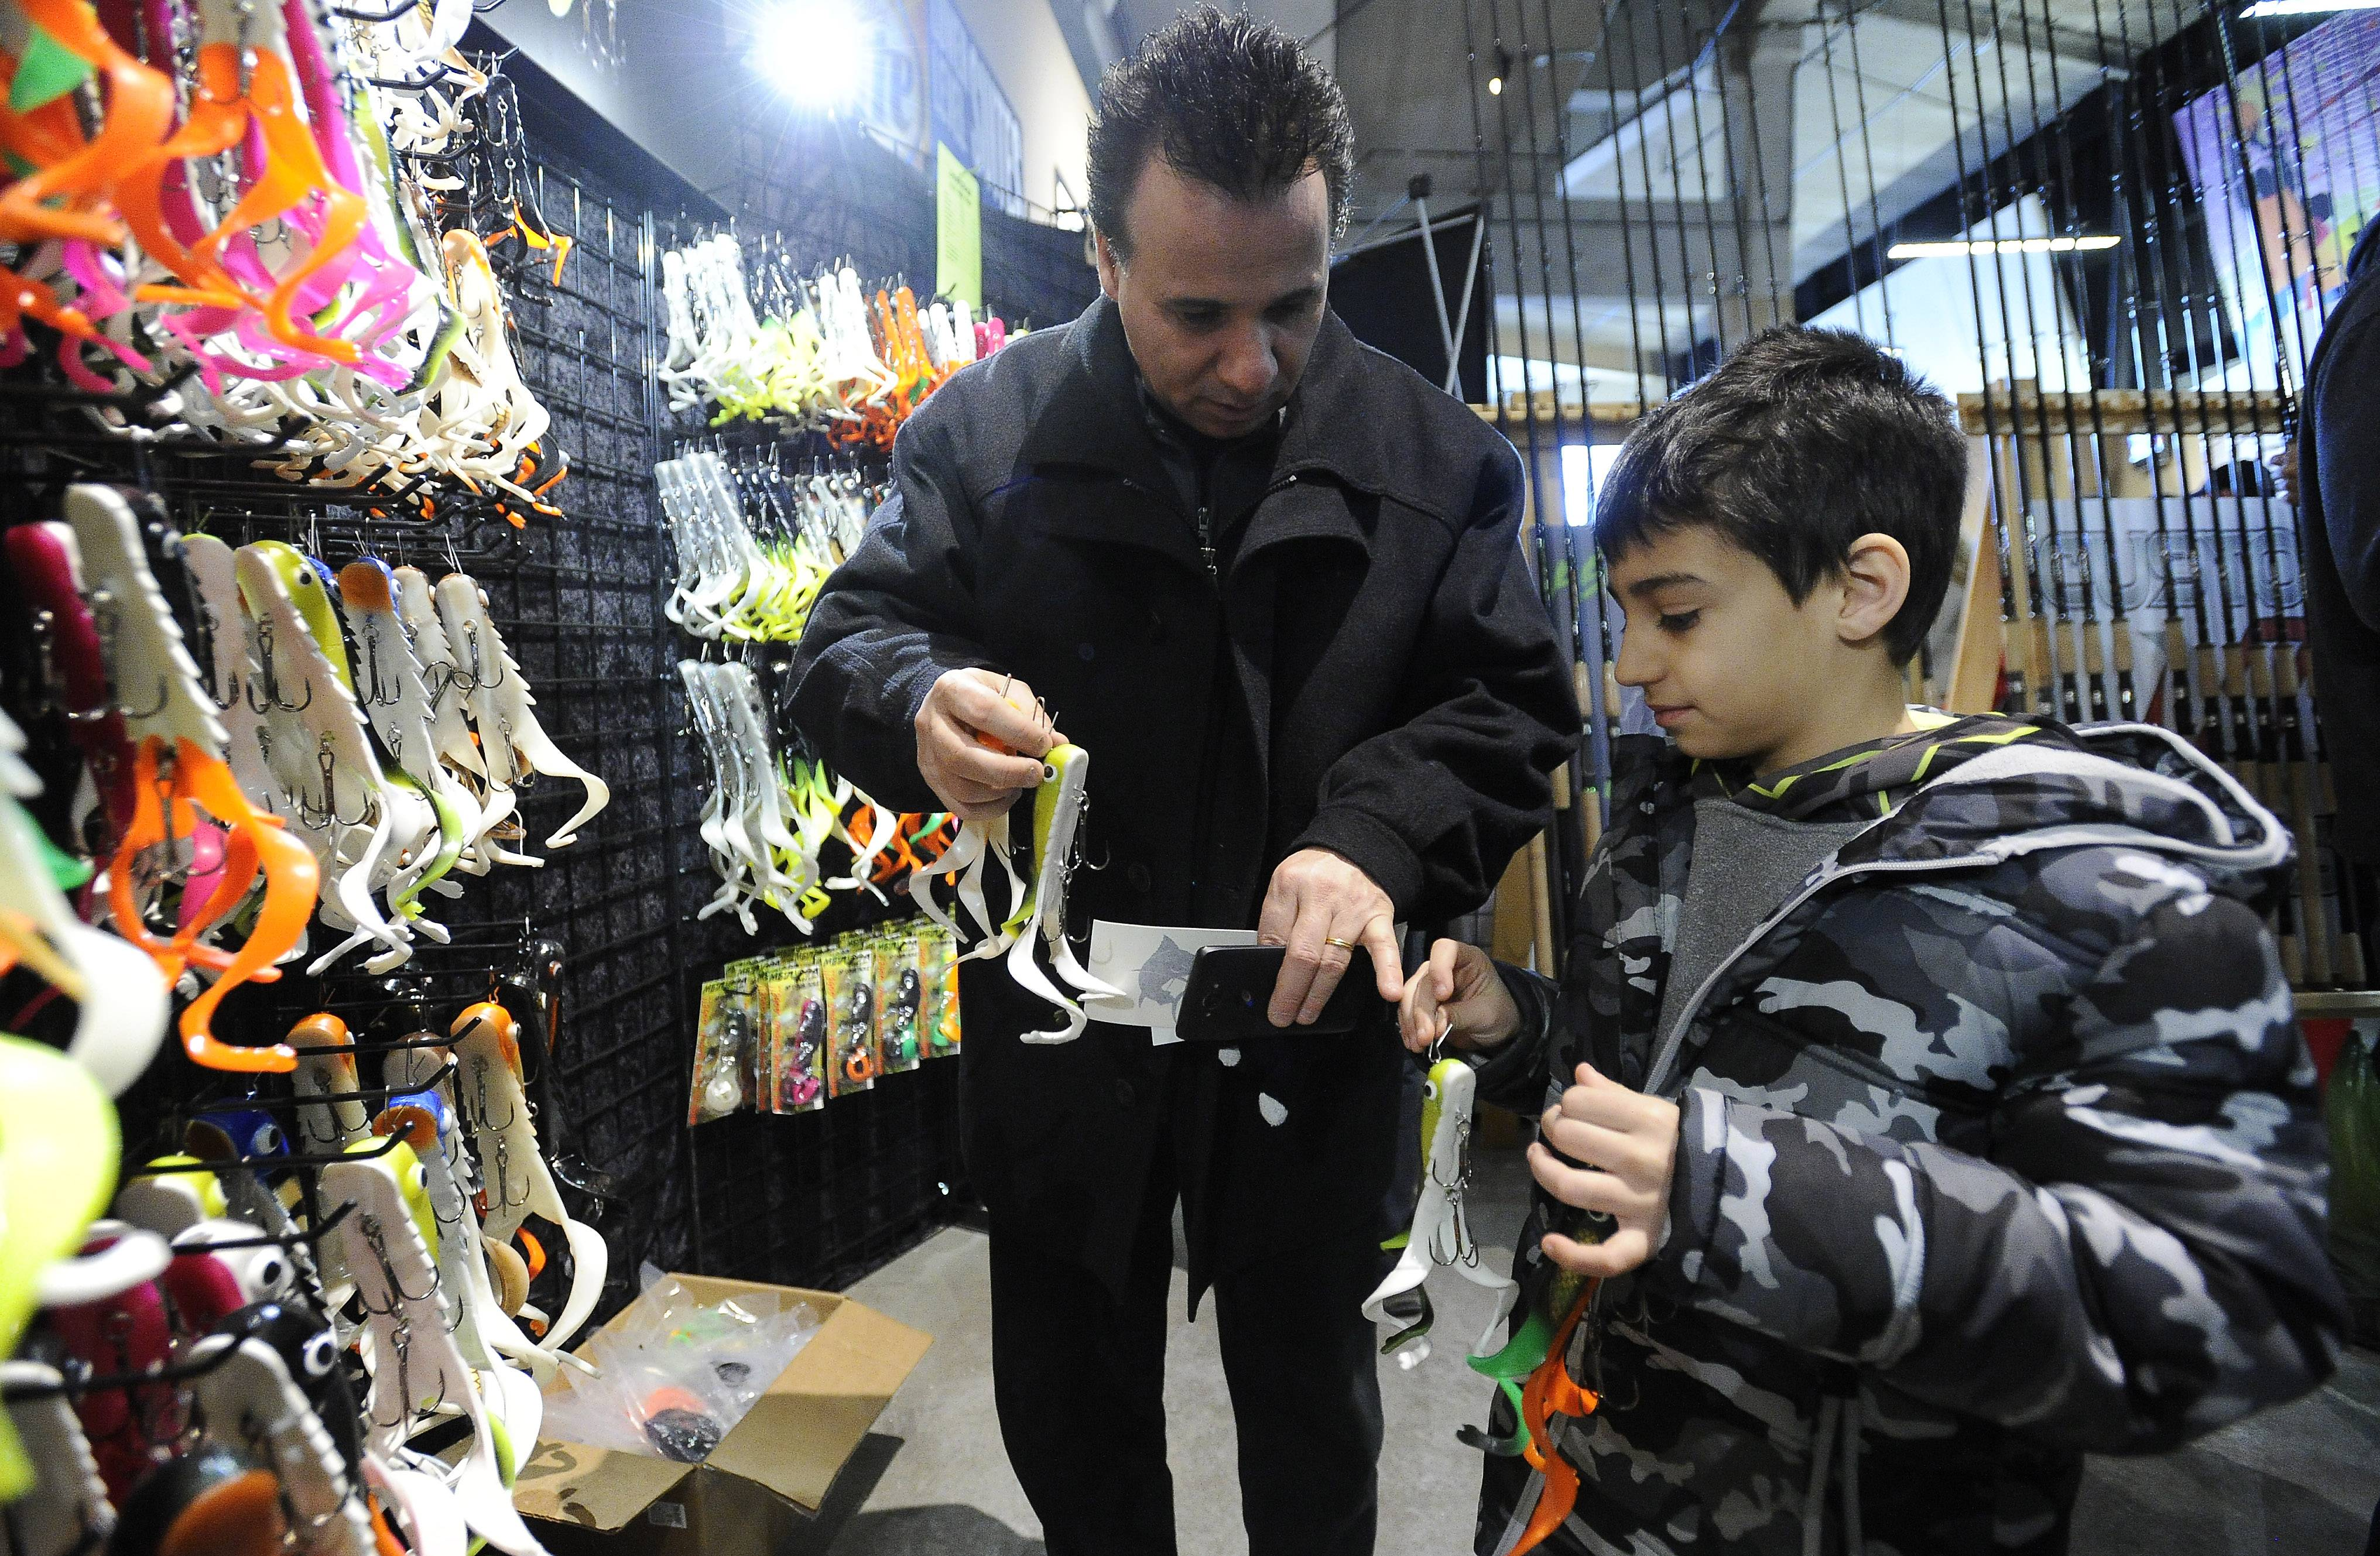 Paul Malek and his son Charlie, 8, of Naperville prepare to purchase different muskie lures on display Saturday at the Chicago Muskie Expo held at the Sears Centre in Hoffman Estates.